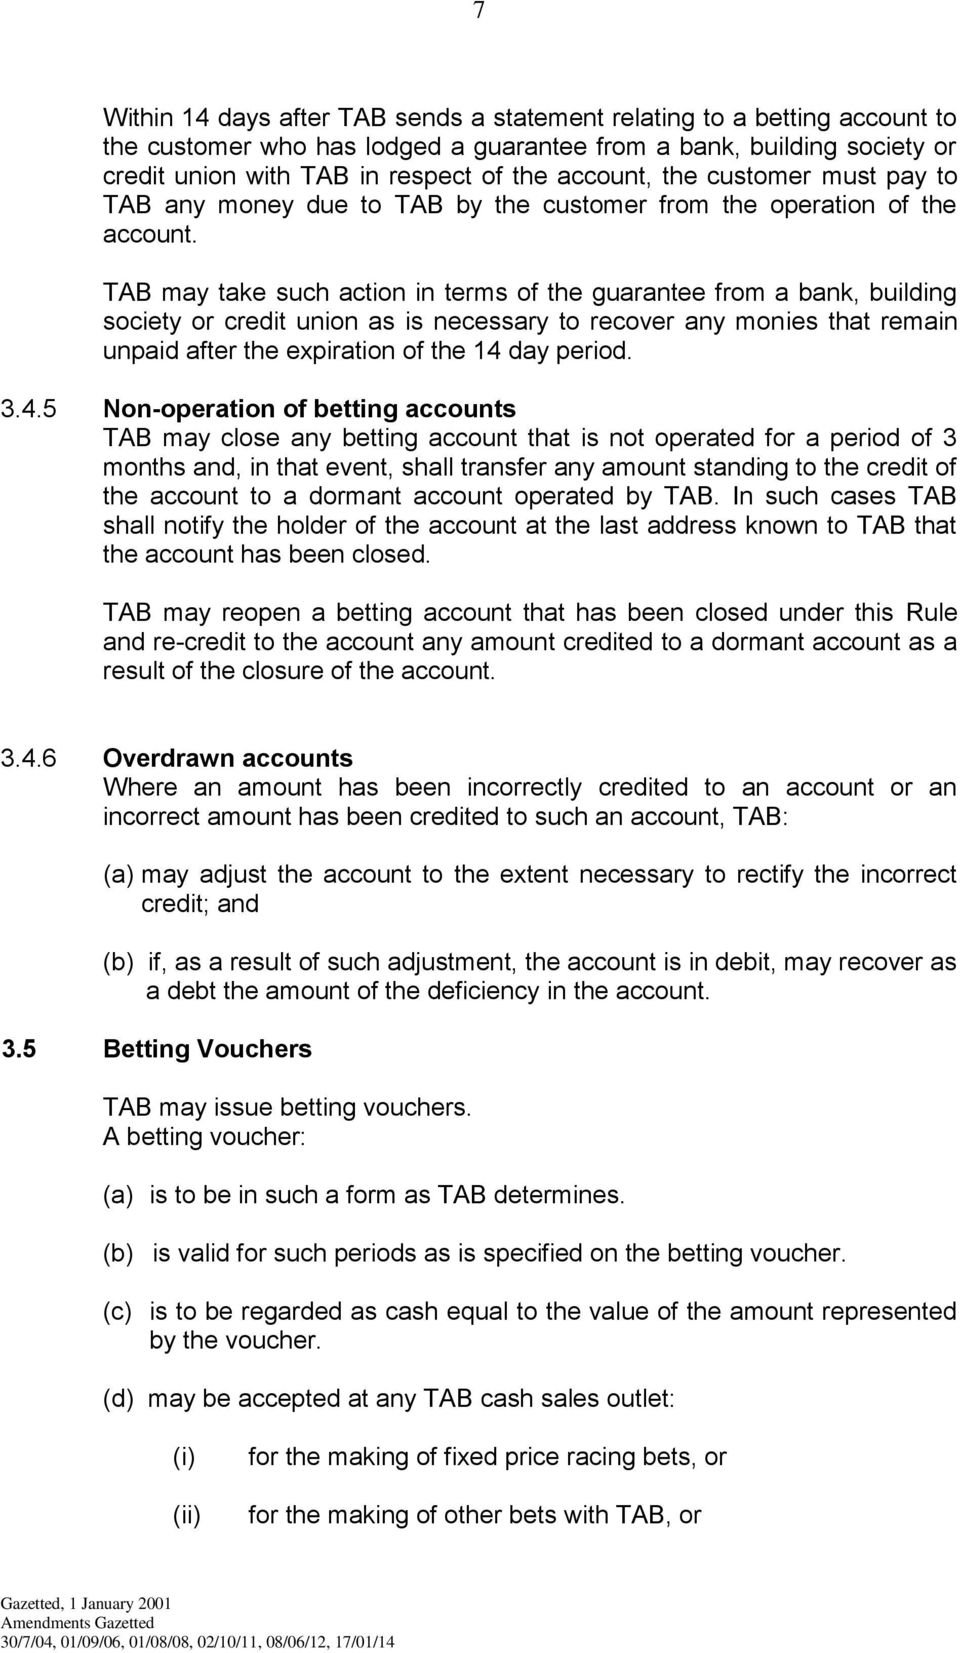 TAB may take such action in terms of the guarantee from a bank, building society or credit union as is necessary to recover any monies that remain unpaid after the expiration of the 14 day period. 3.